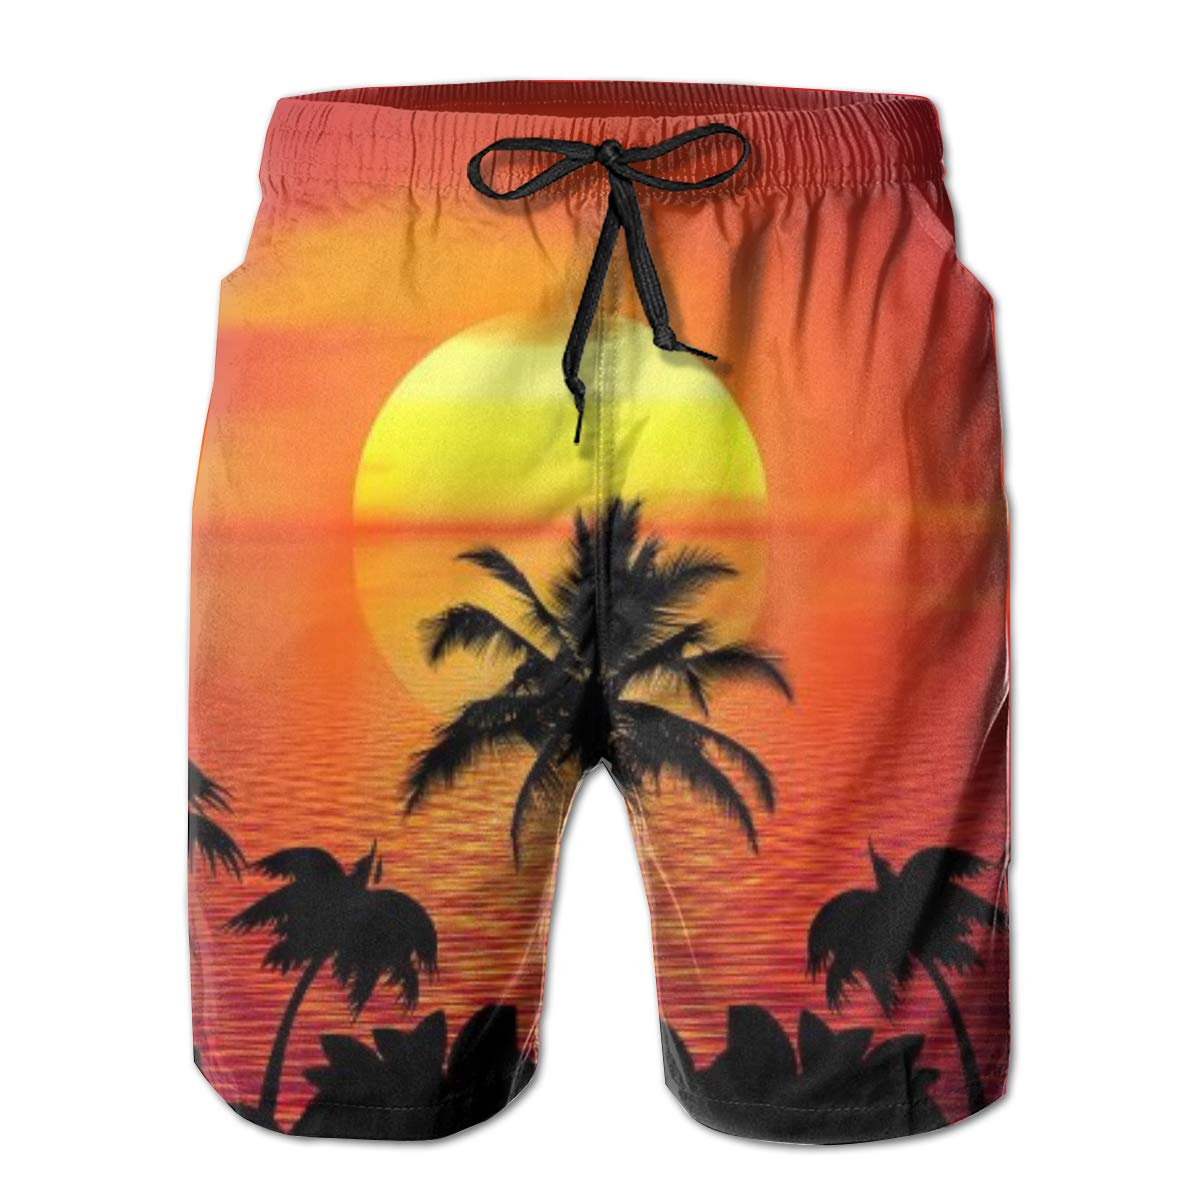 FASUWAVE Mens Swim Trunks Tropical Quick Dry Beach Board Shorts with Mesh Lining